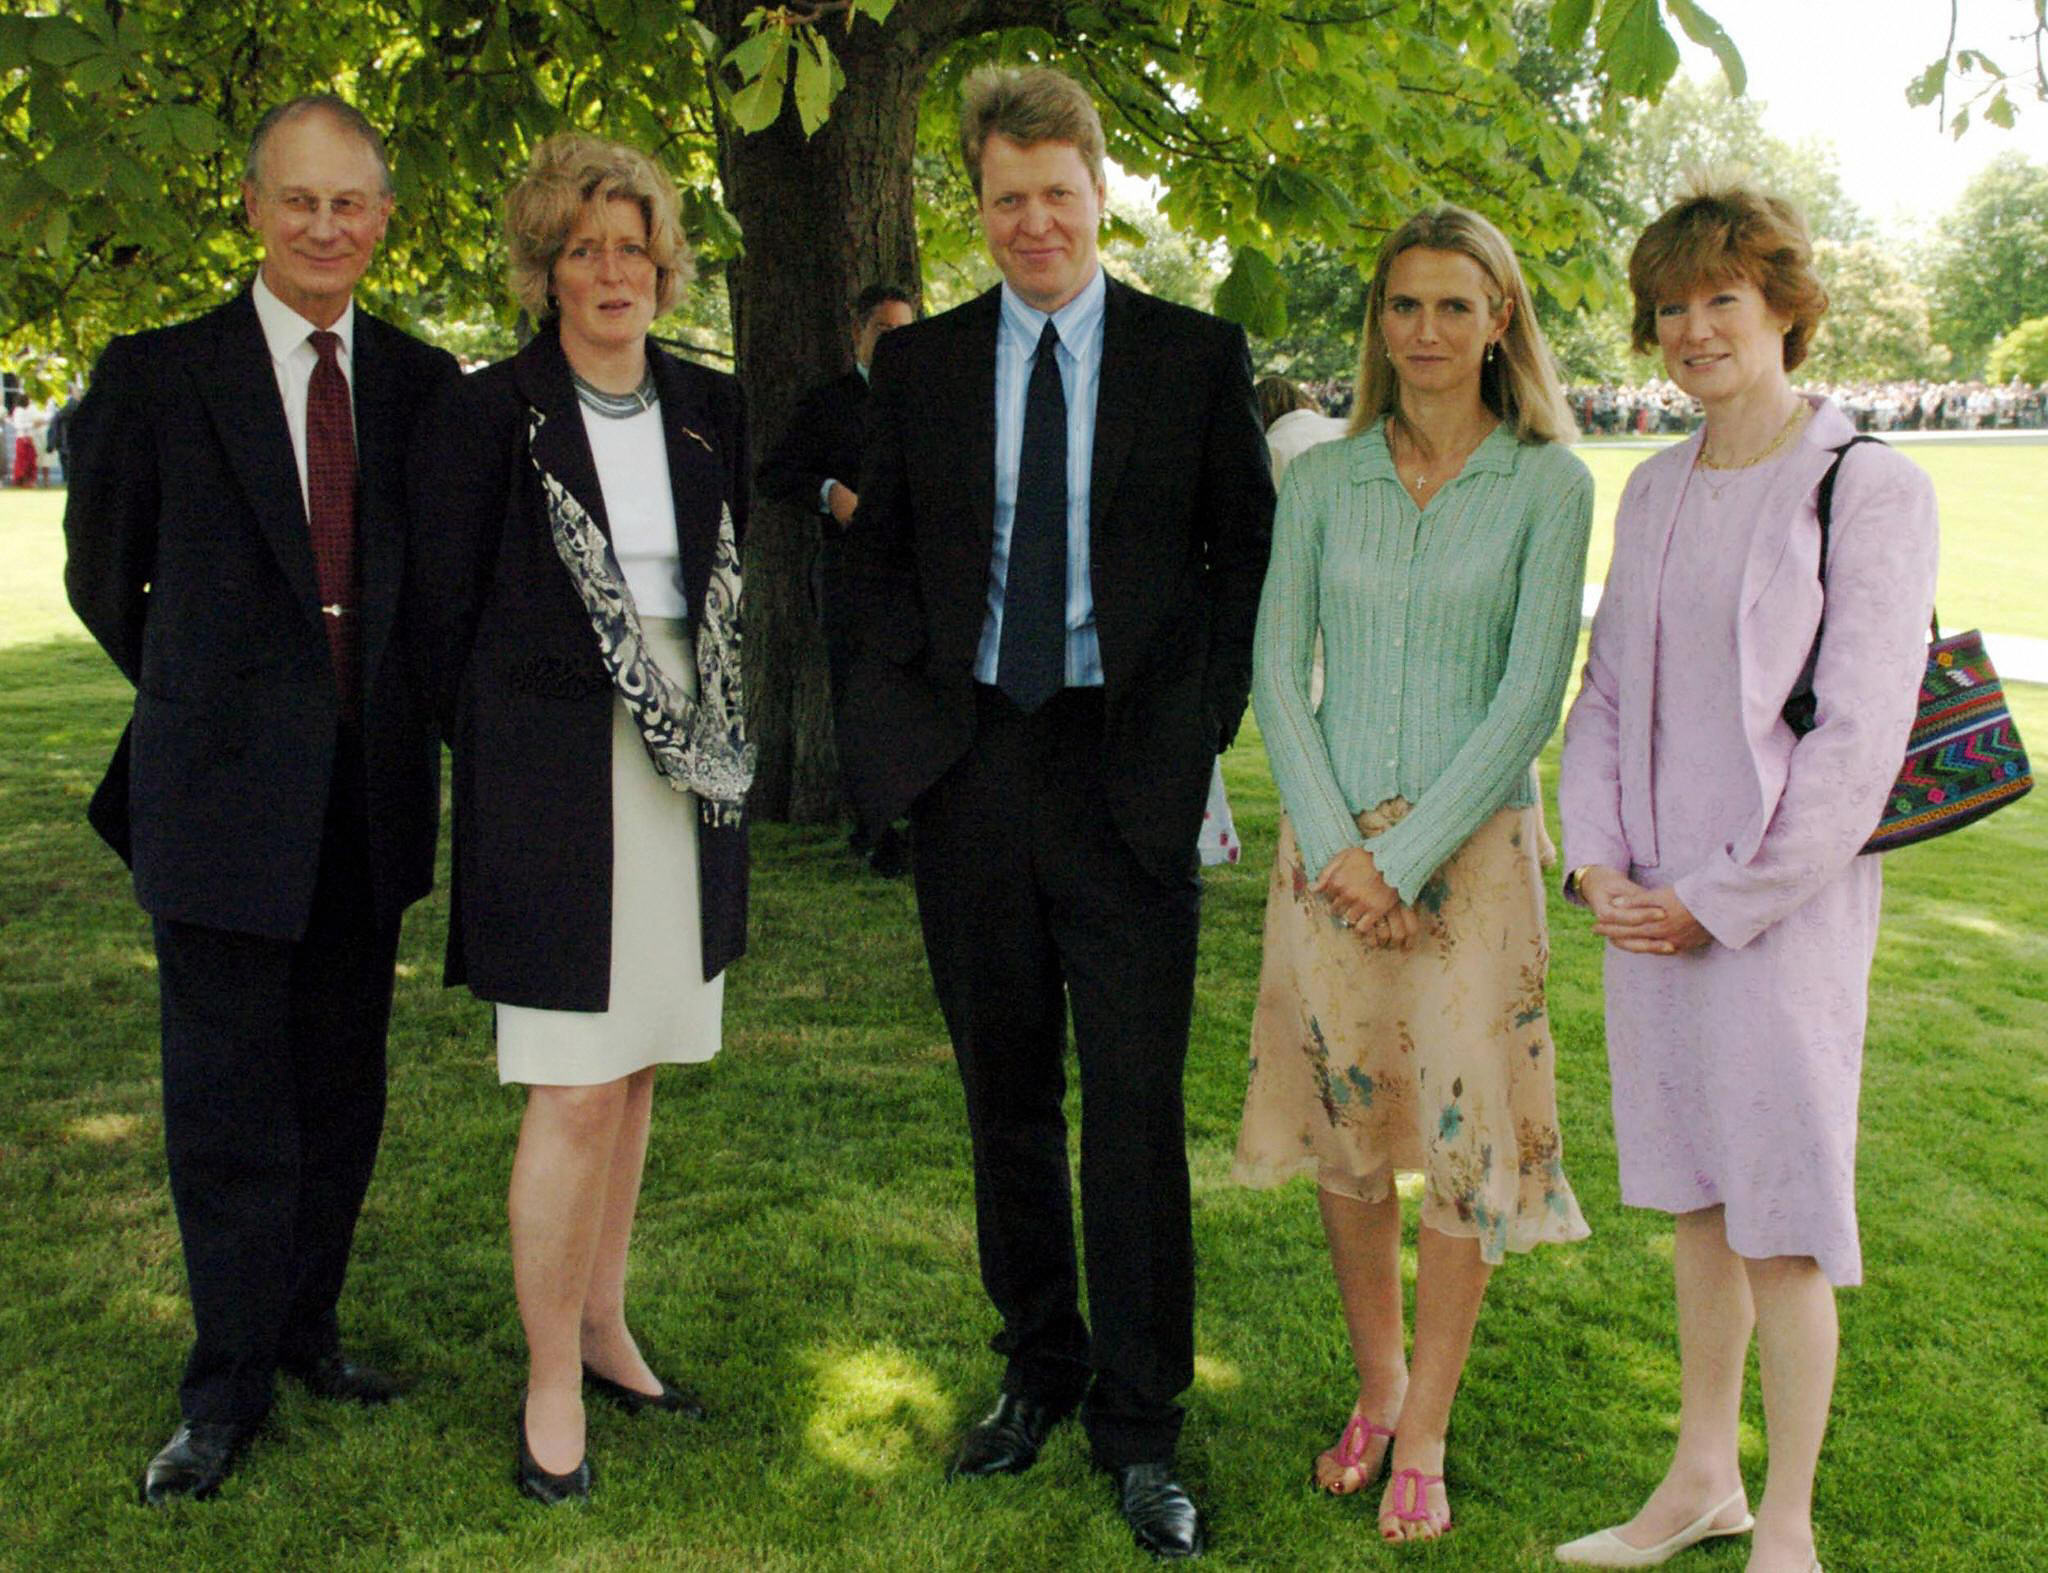 Earl Spencer (C) with (L-R) Sir William Fellowes, Lady Jane Fellowes, Lady Spencer and Lady Sarah Macorquadale at Diana memorial